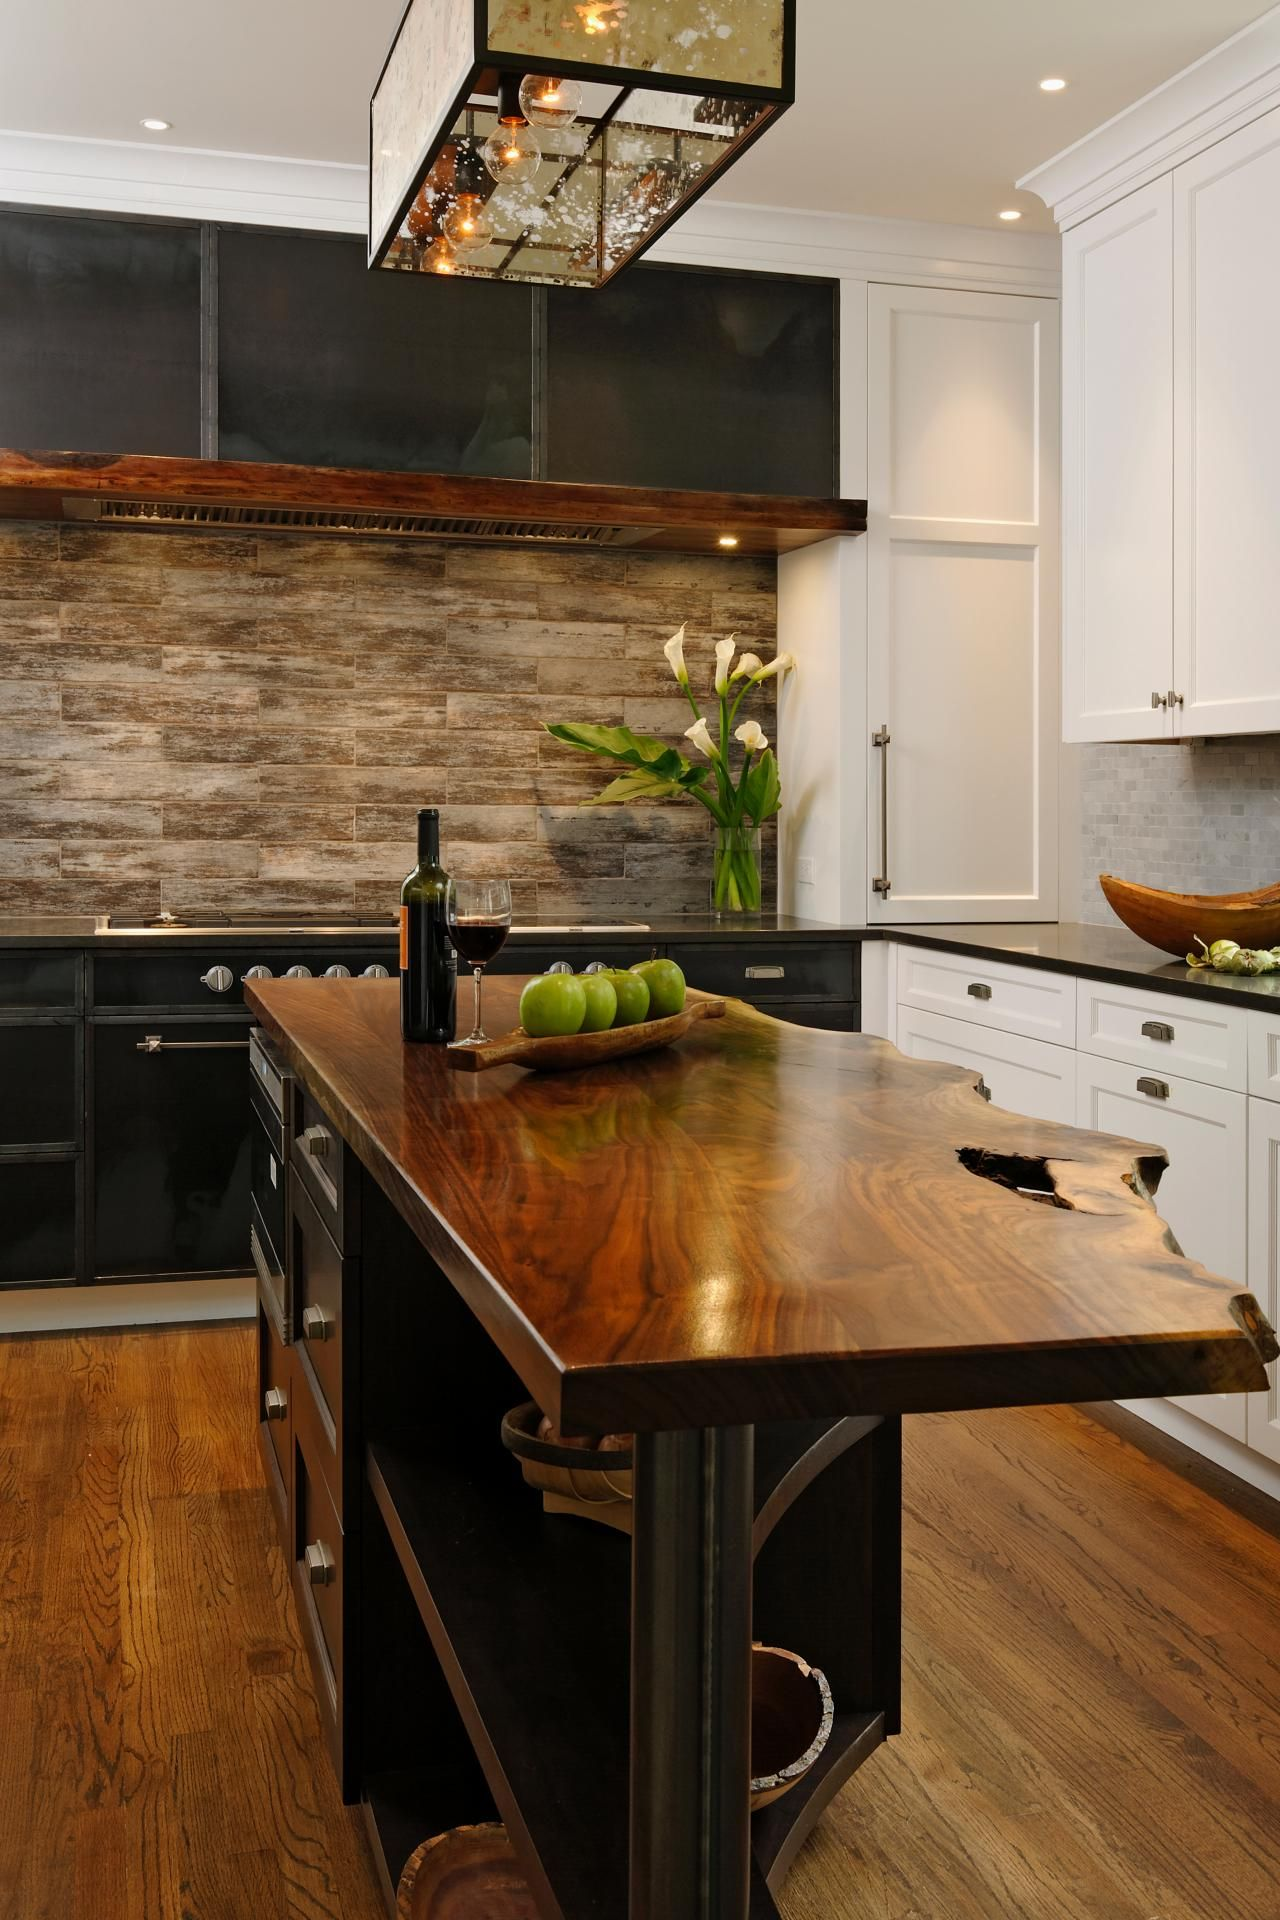 A Kitchen Island With A Live Edge Walnut Countertop Is The Star Of